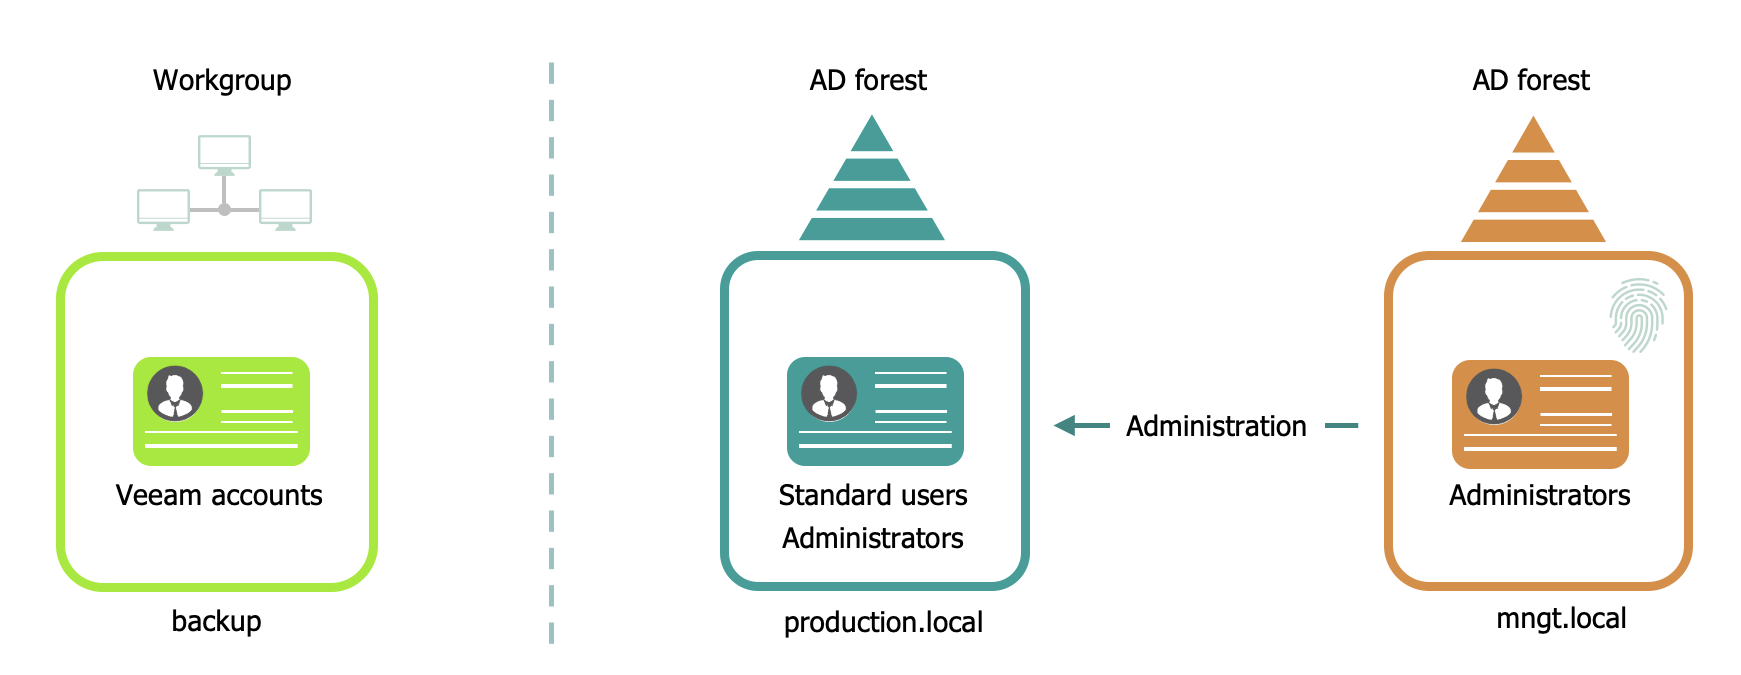 Workgroup, Domain or Forest?